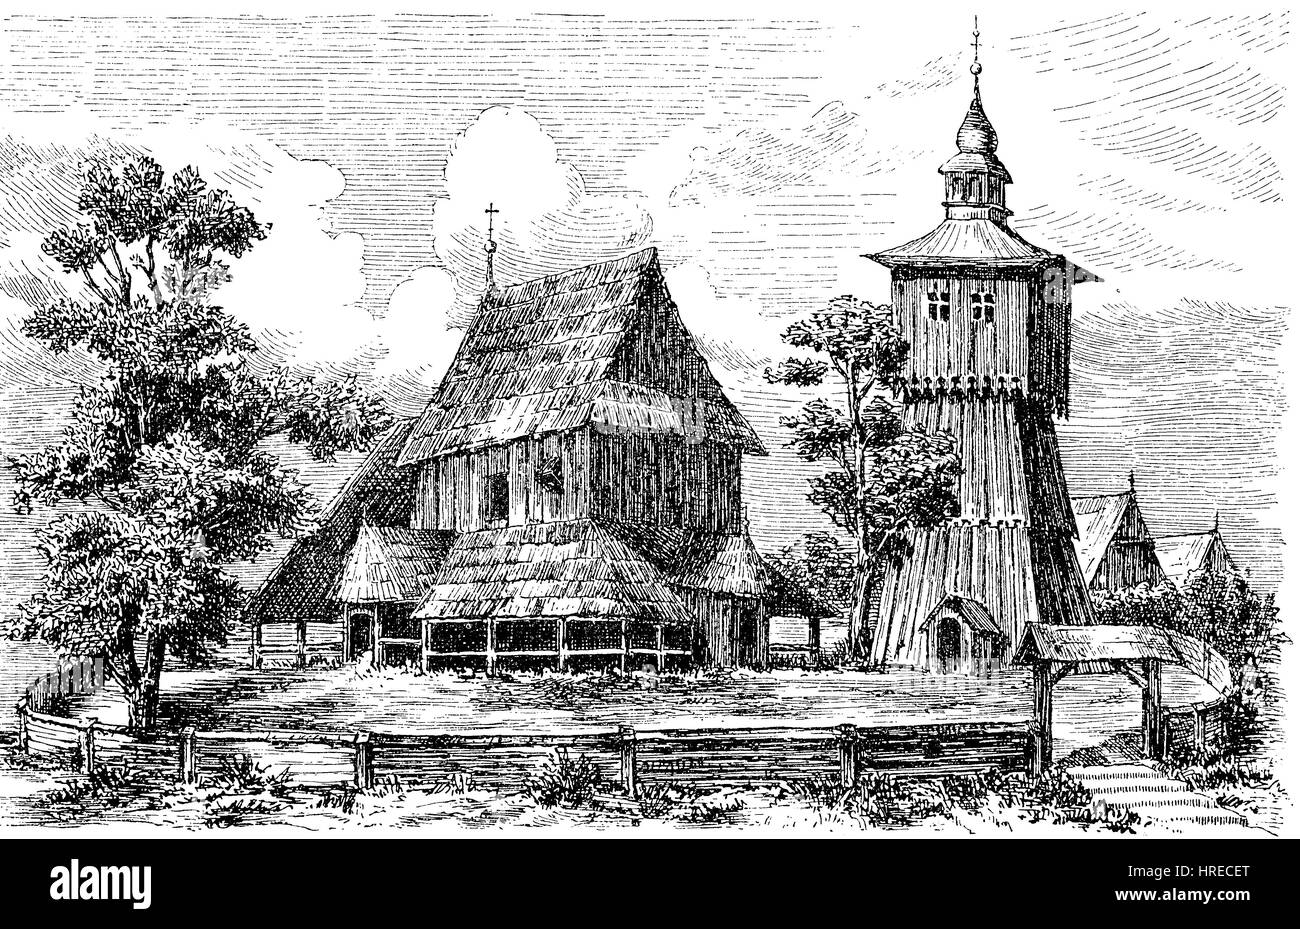 Church of oak logs in Ludom, Lubom from the 13th century, Silesia, Poland, reproduction of an woodcut from the 19th - Stock Image